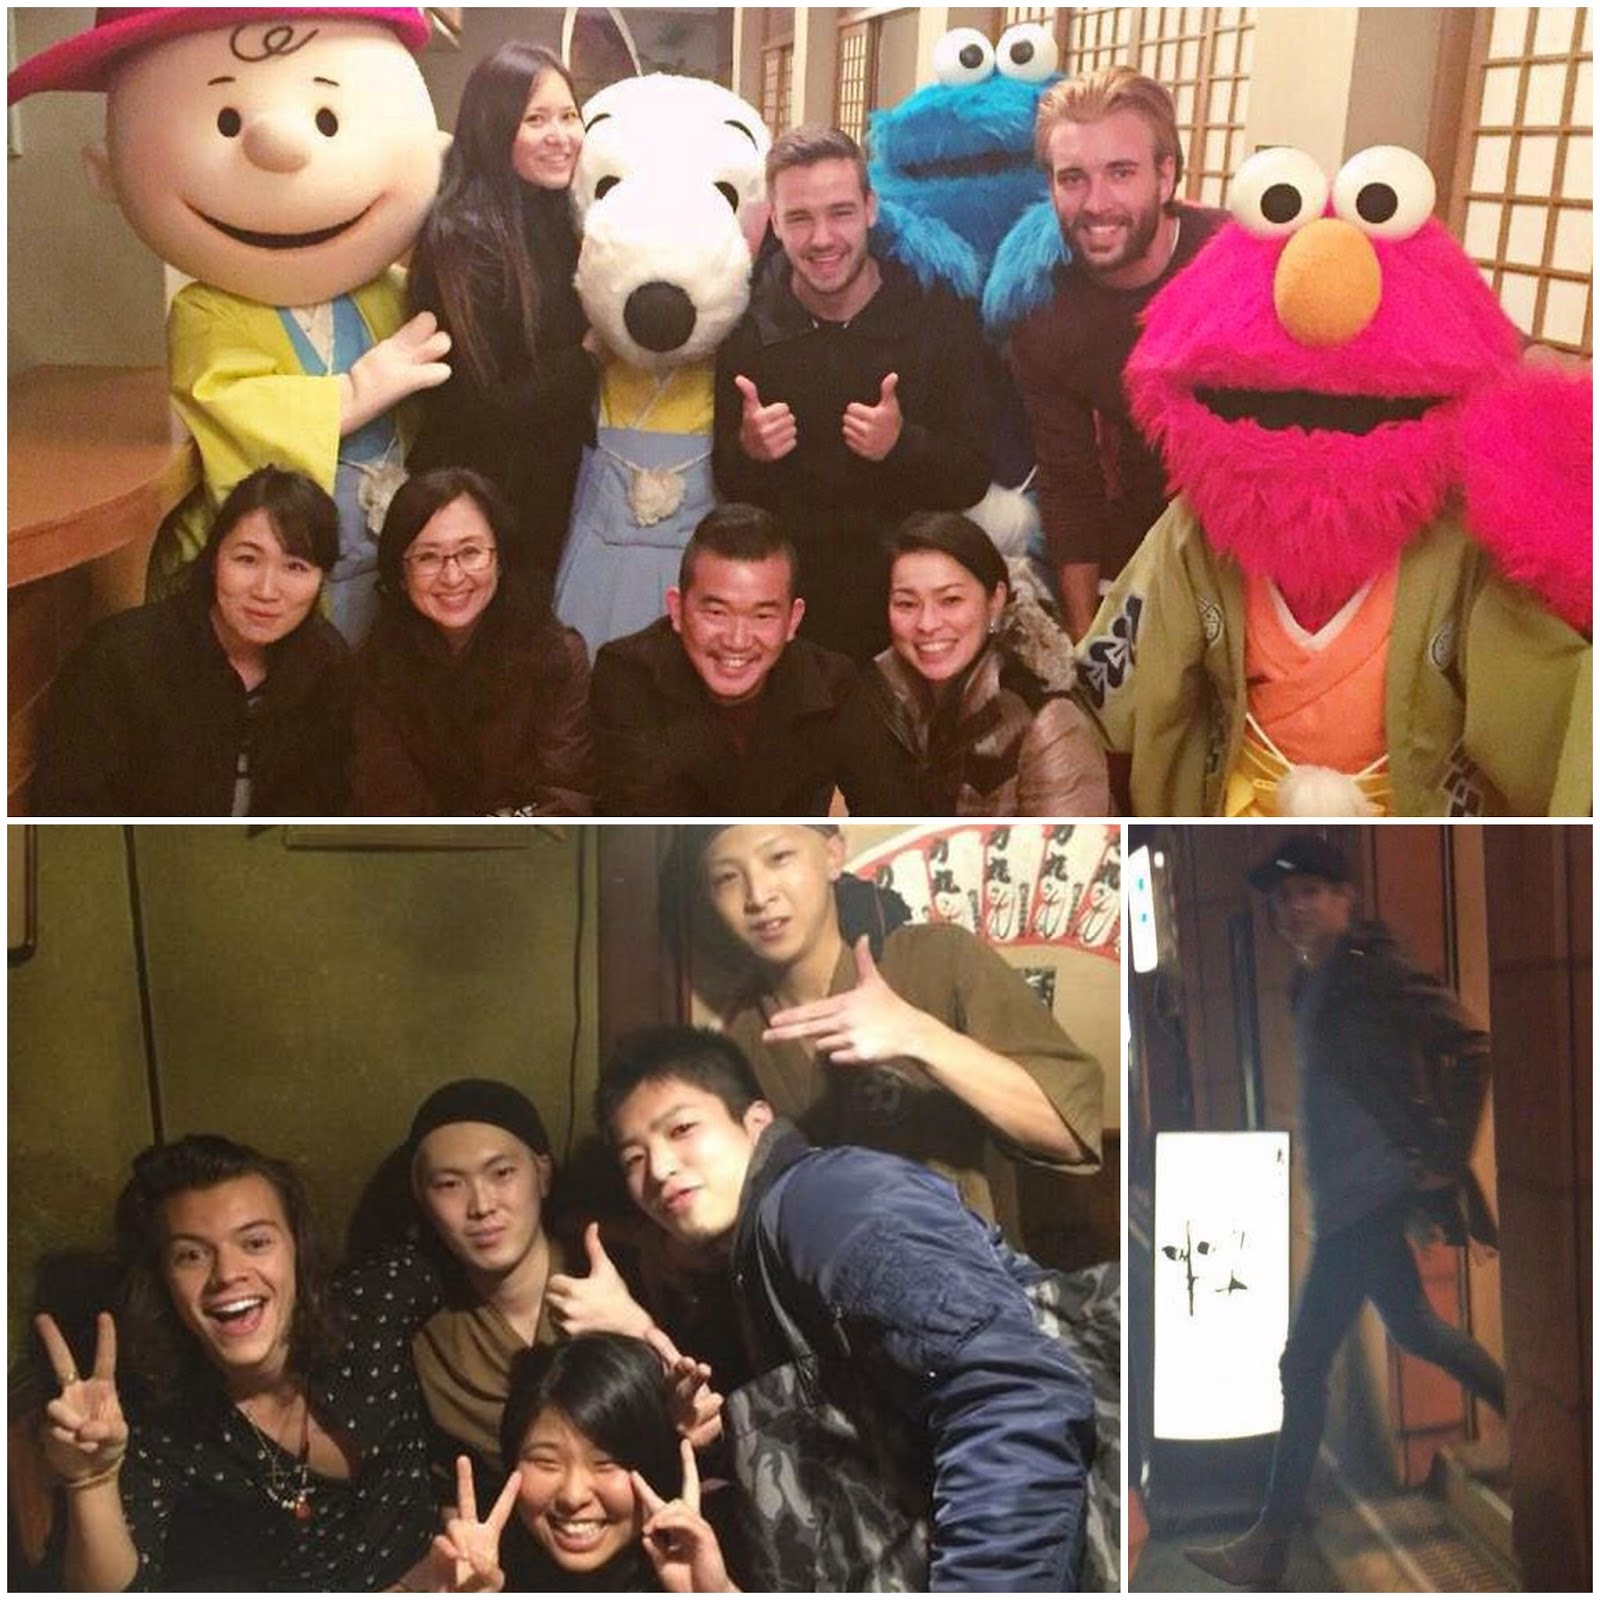 23.02.15, day off, fans, harry styles, japan, liam payne, niall horan, one direction, osaka,